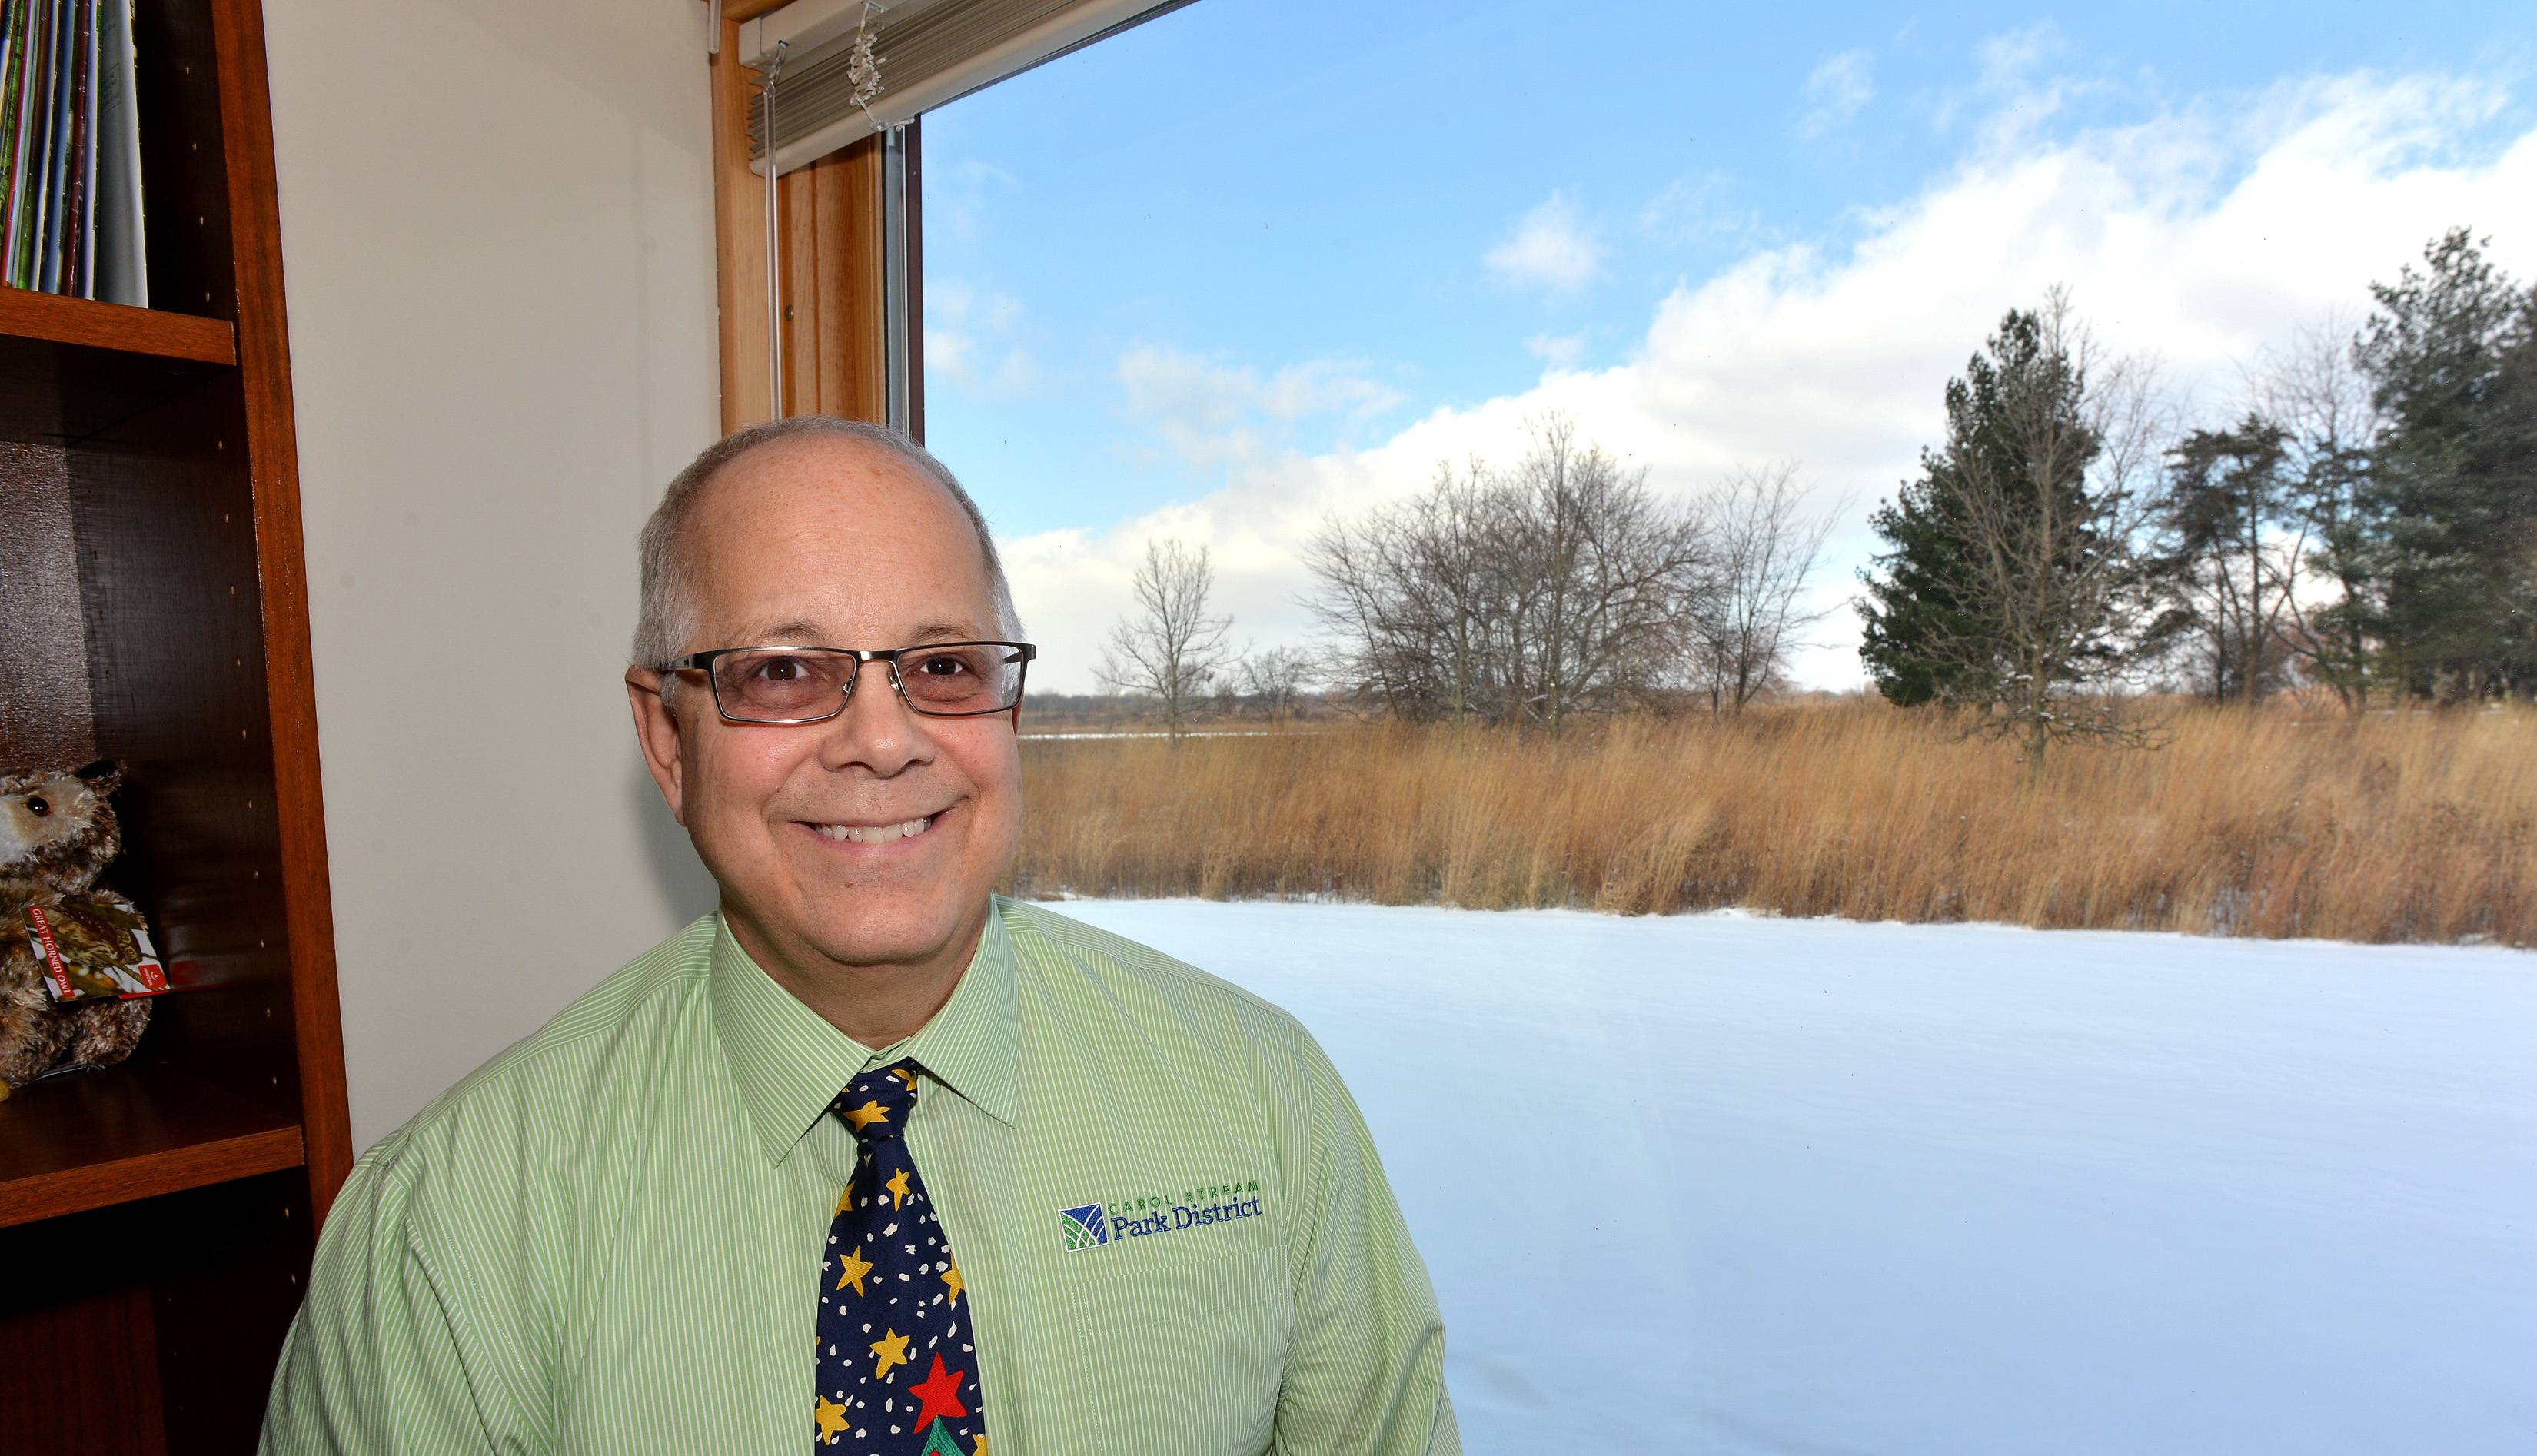 DuPage Forest Preserve District Executive Director Arnie Biondo has been placed on paid leave while he and the district evaluate his employment options, officials said Tuesday.